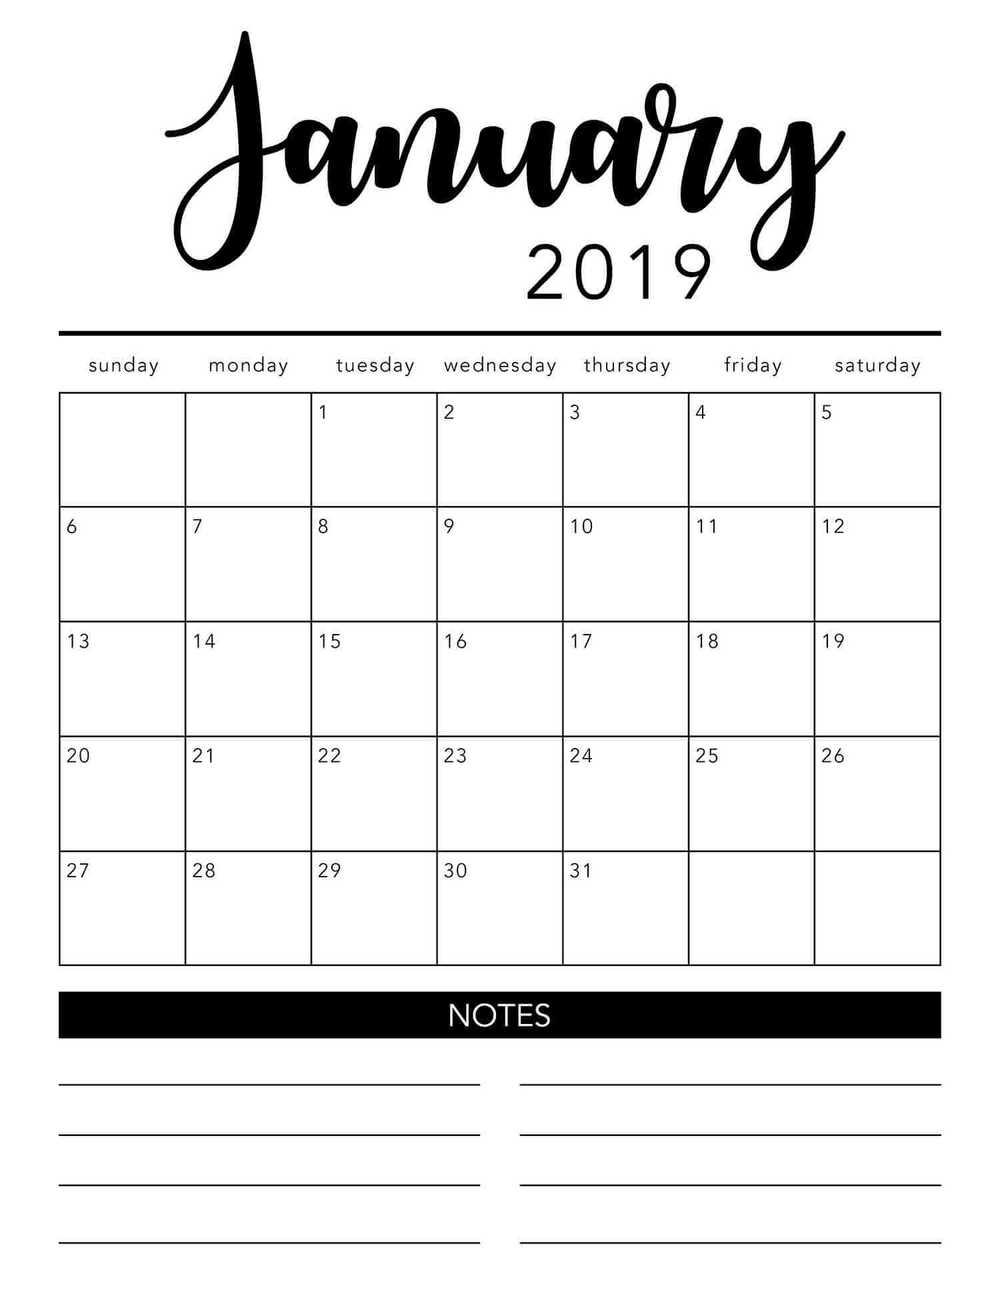 Free 2019 Printable Calendar Template (2 Colors!) - I Heart Naptime